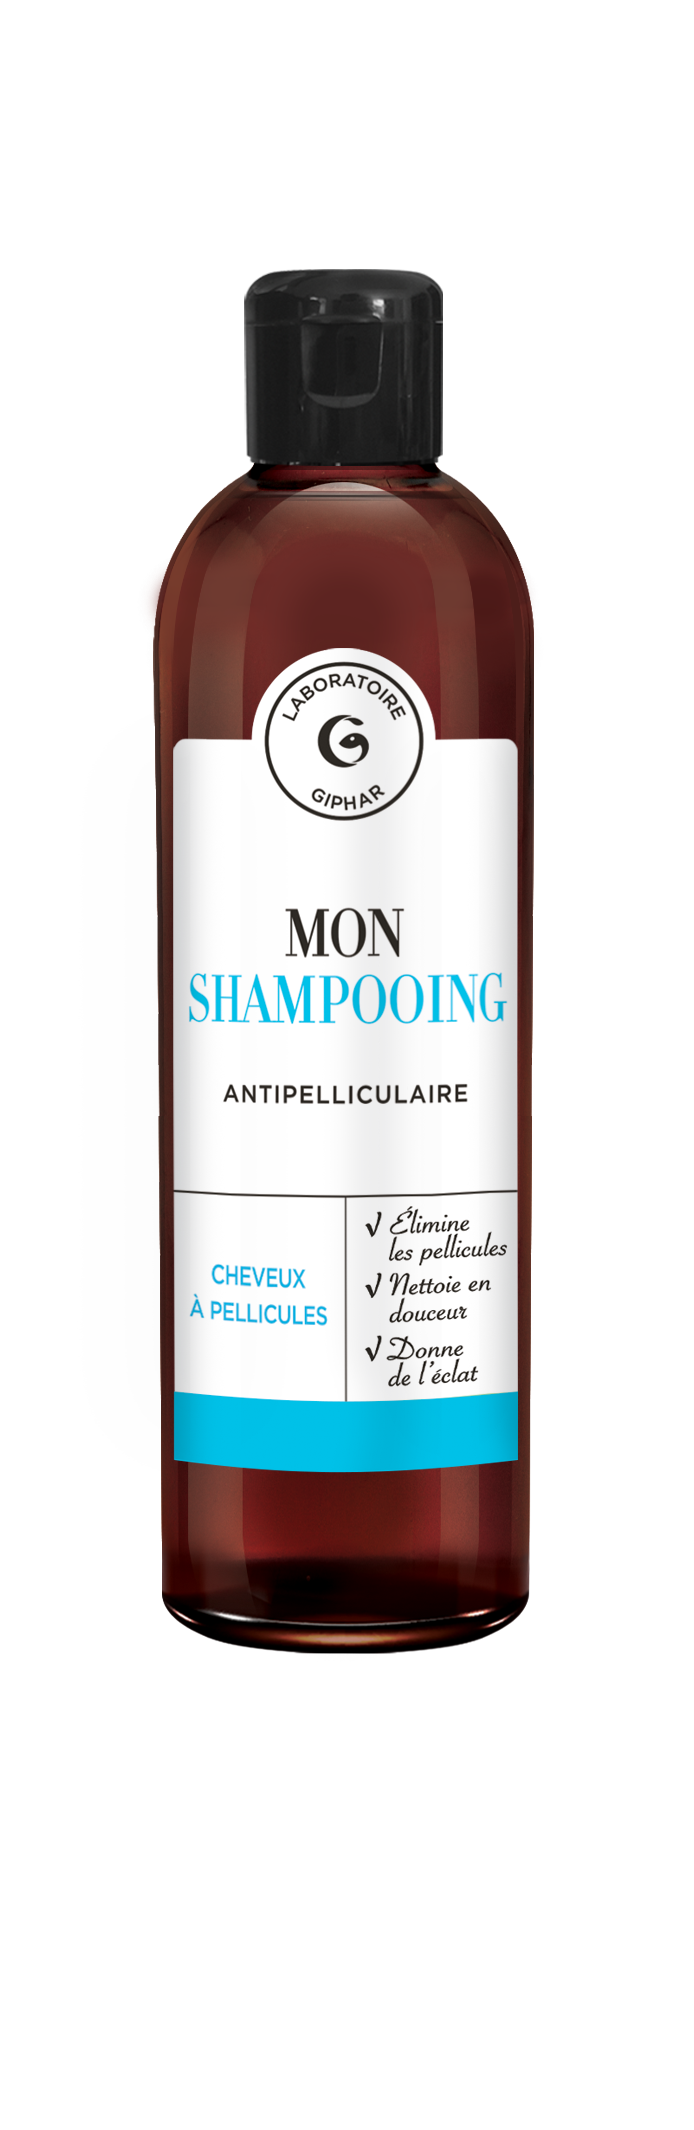 shampooing antipelliculaire packaging